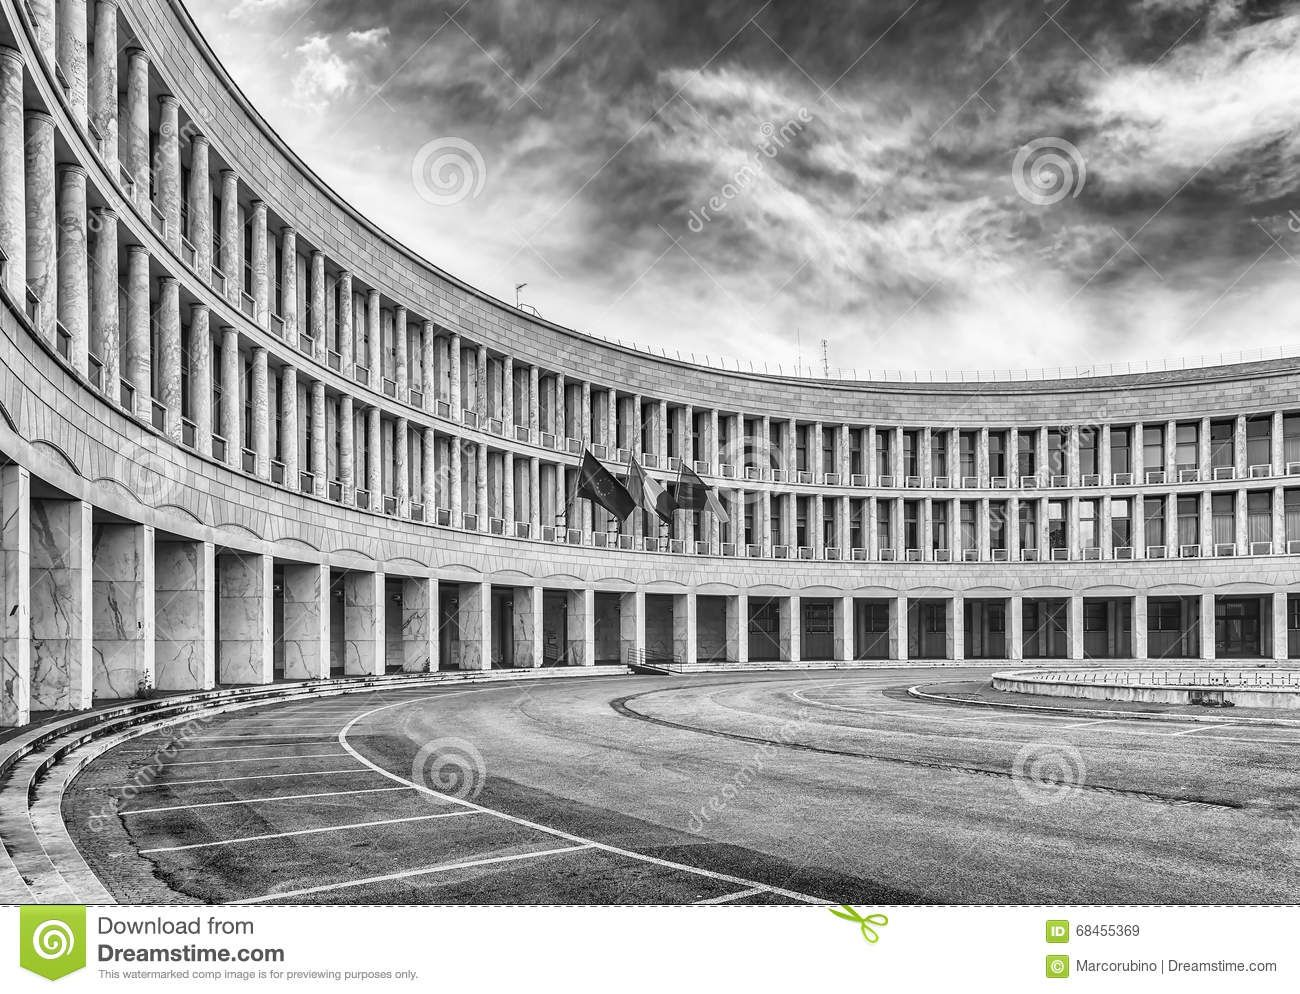 Neoclassical Architecture In Eur District Rome Italy Stock Image Image Of Italian Italy 68455369